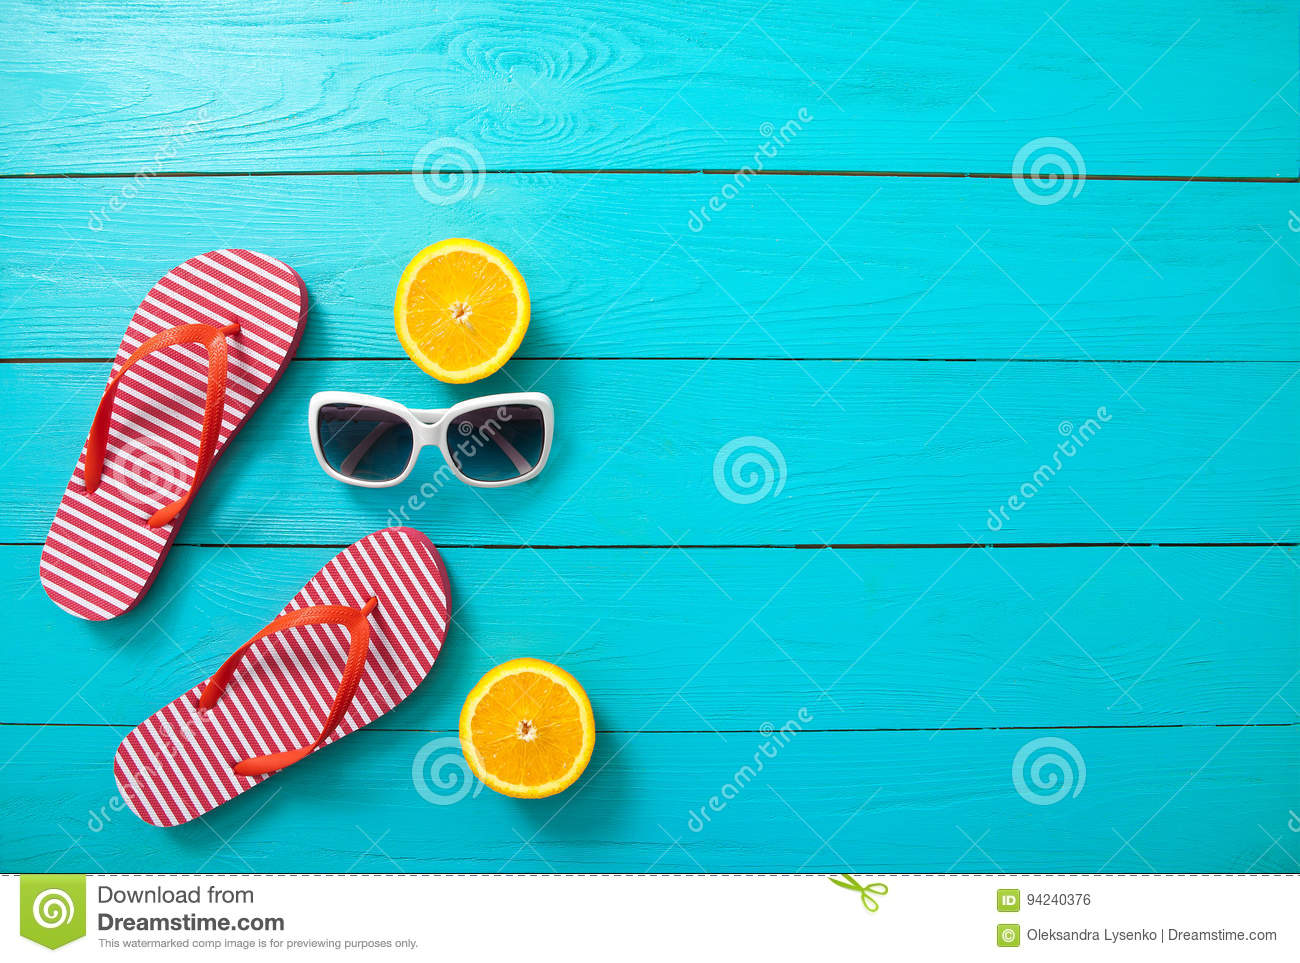 Red striped flip flops, red sunglasses and orange fruit on blue wooden background. Top view and summer time.